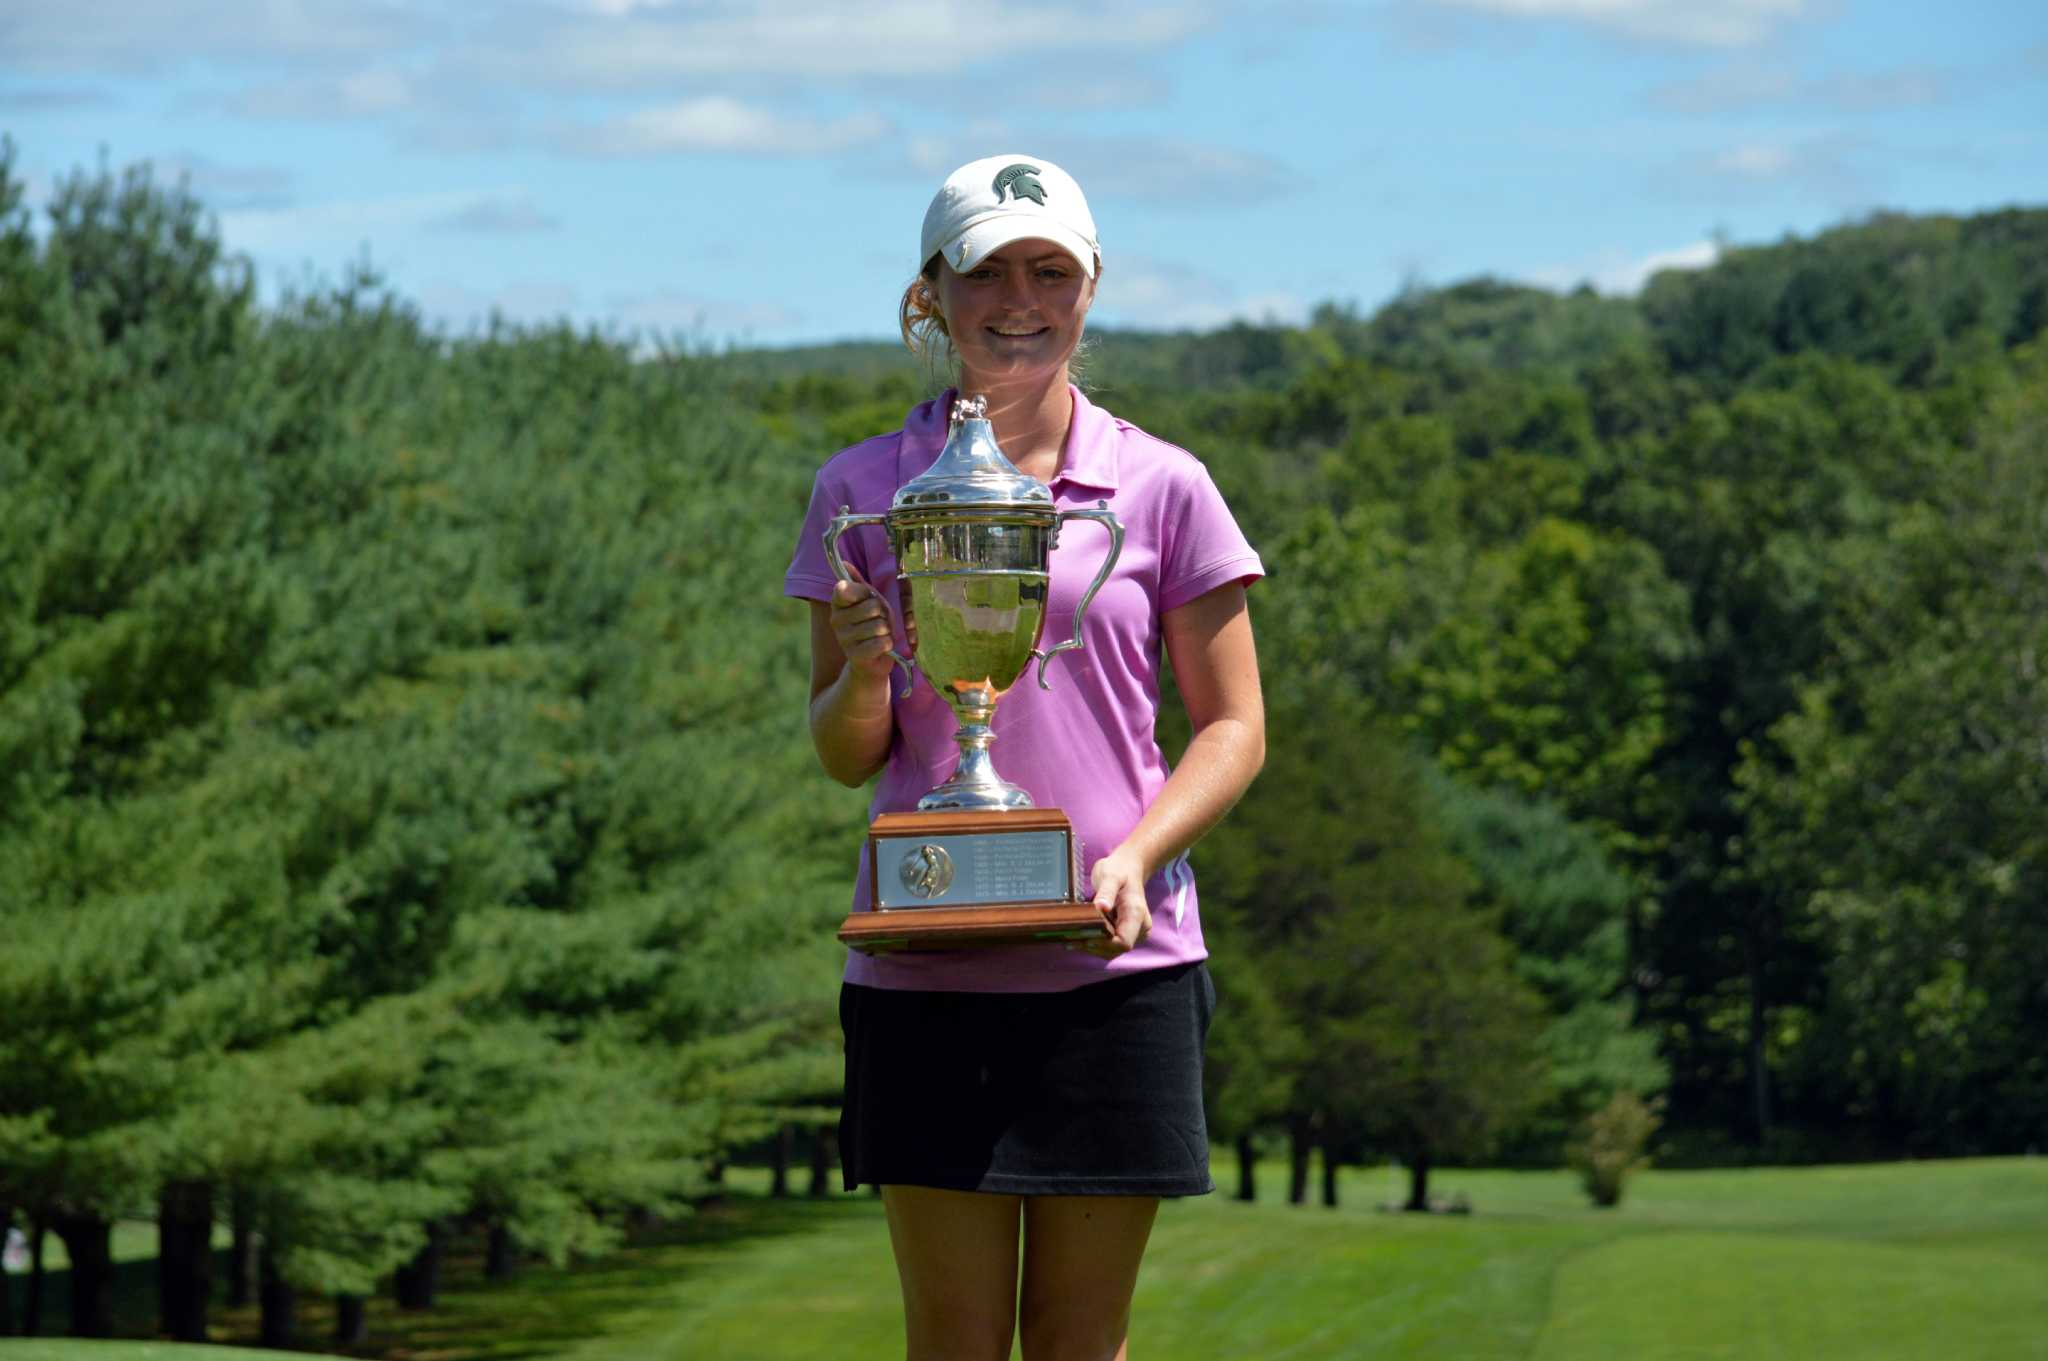 Innis Arden's Catherine McEvoy wins 2nd straight Connecticut Women's